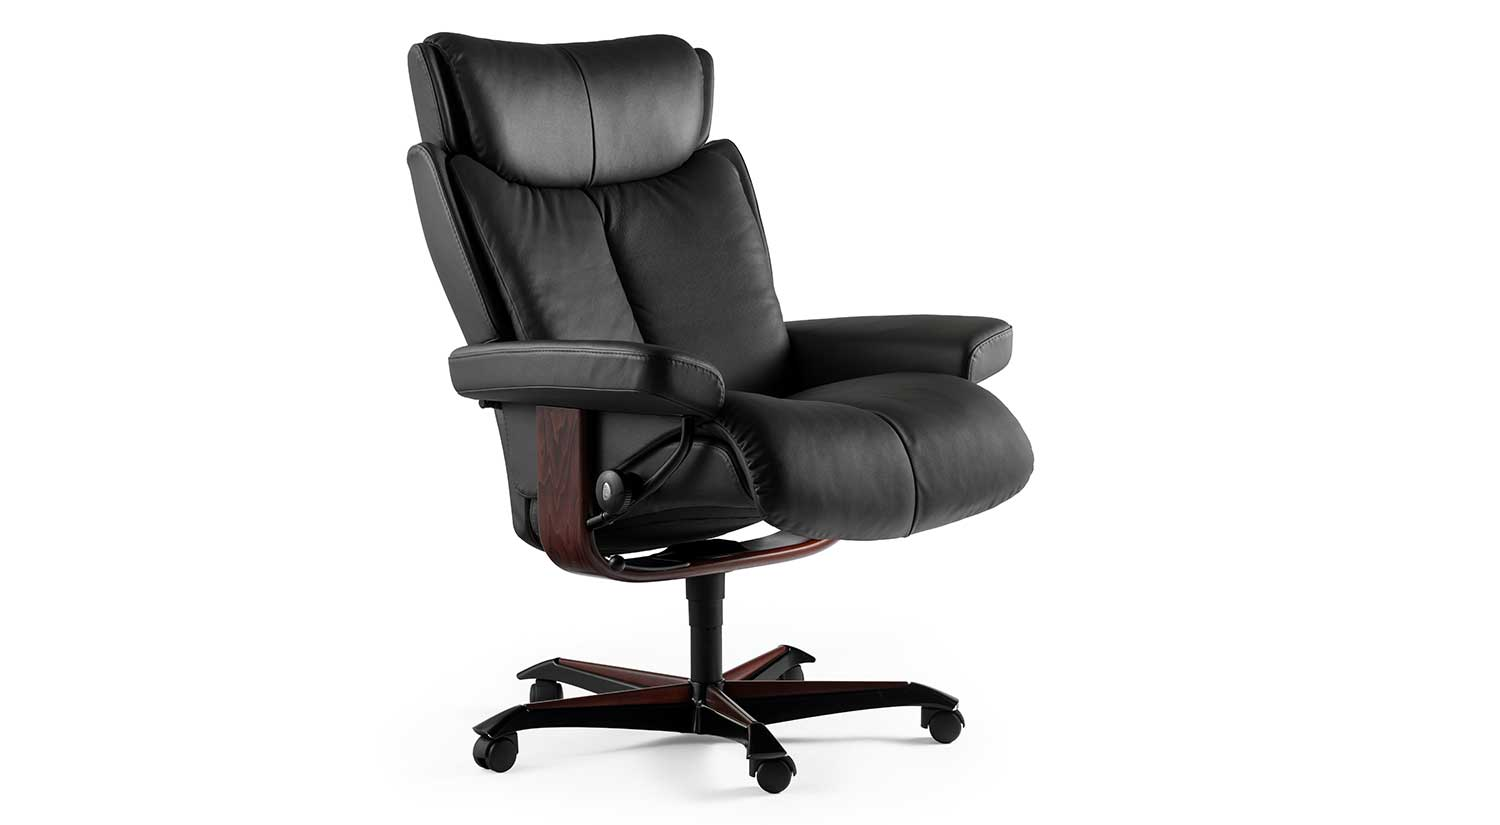 circle furniture stressless magic office chair ekornes. Black Bedroom Furniture Sets. Home Design Ideas